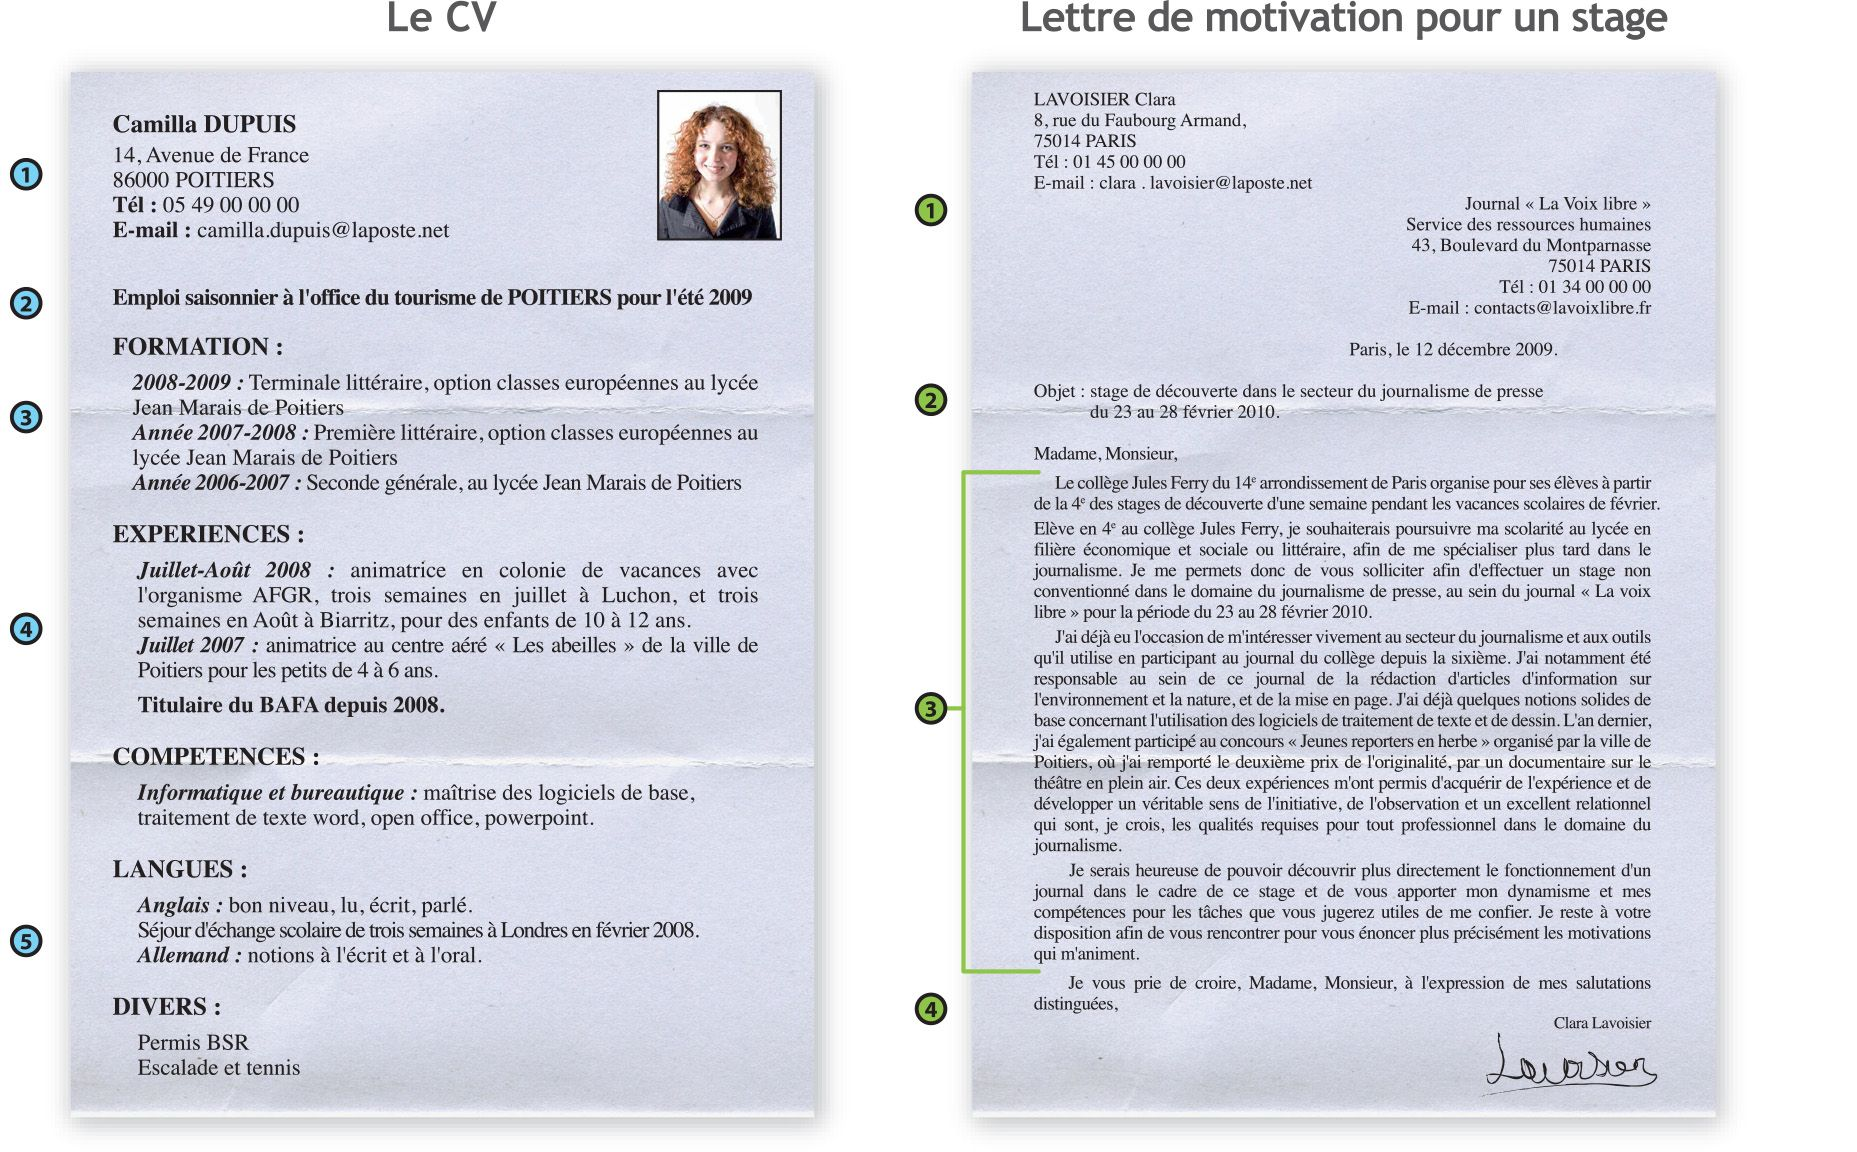 sequence cv et lettre de motivation